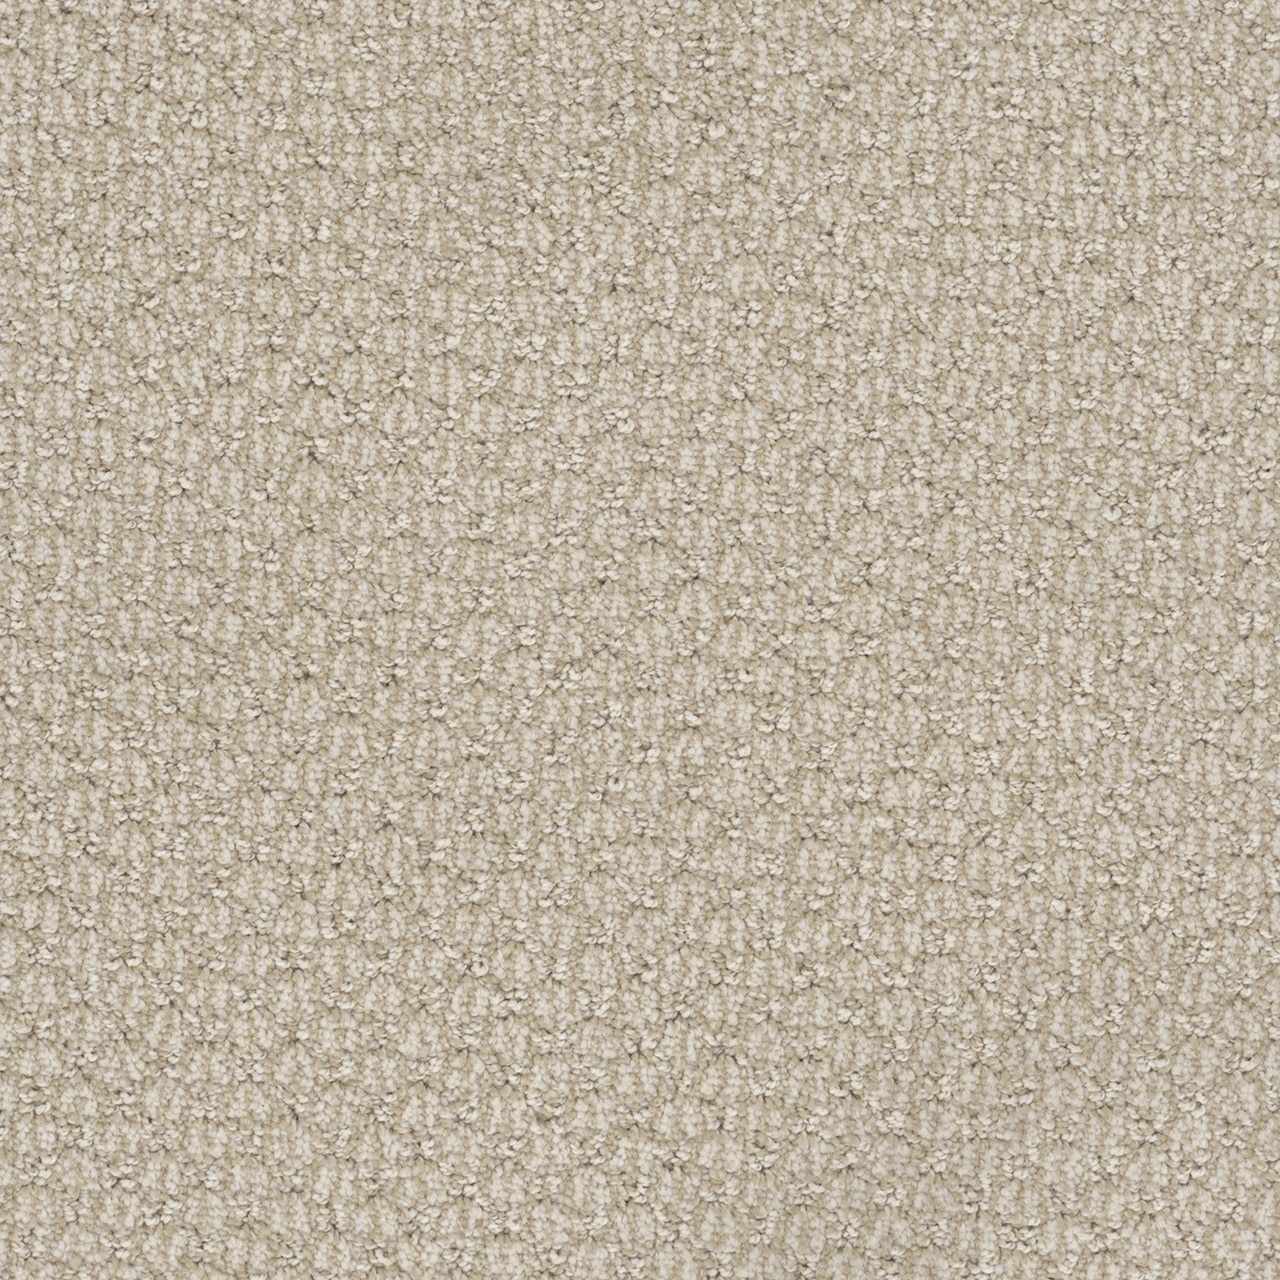 Dreamweaver Enduring 3525 Residential Carpet In 2020 Carpet Home Carpet Engineered Flooring